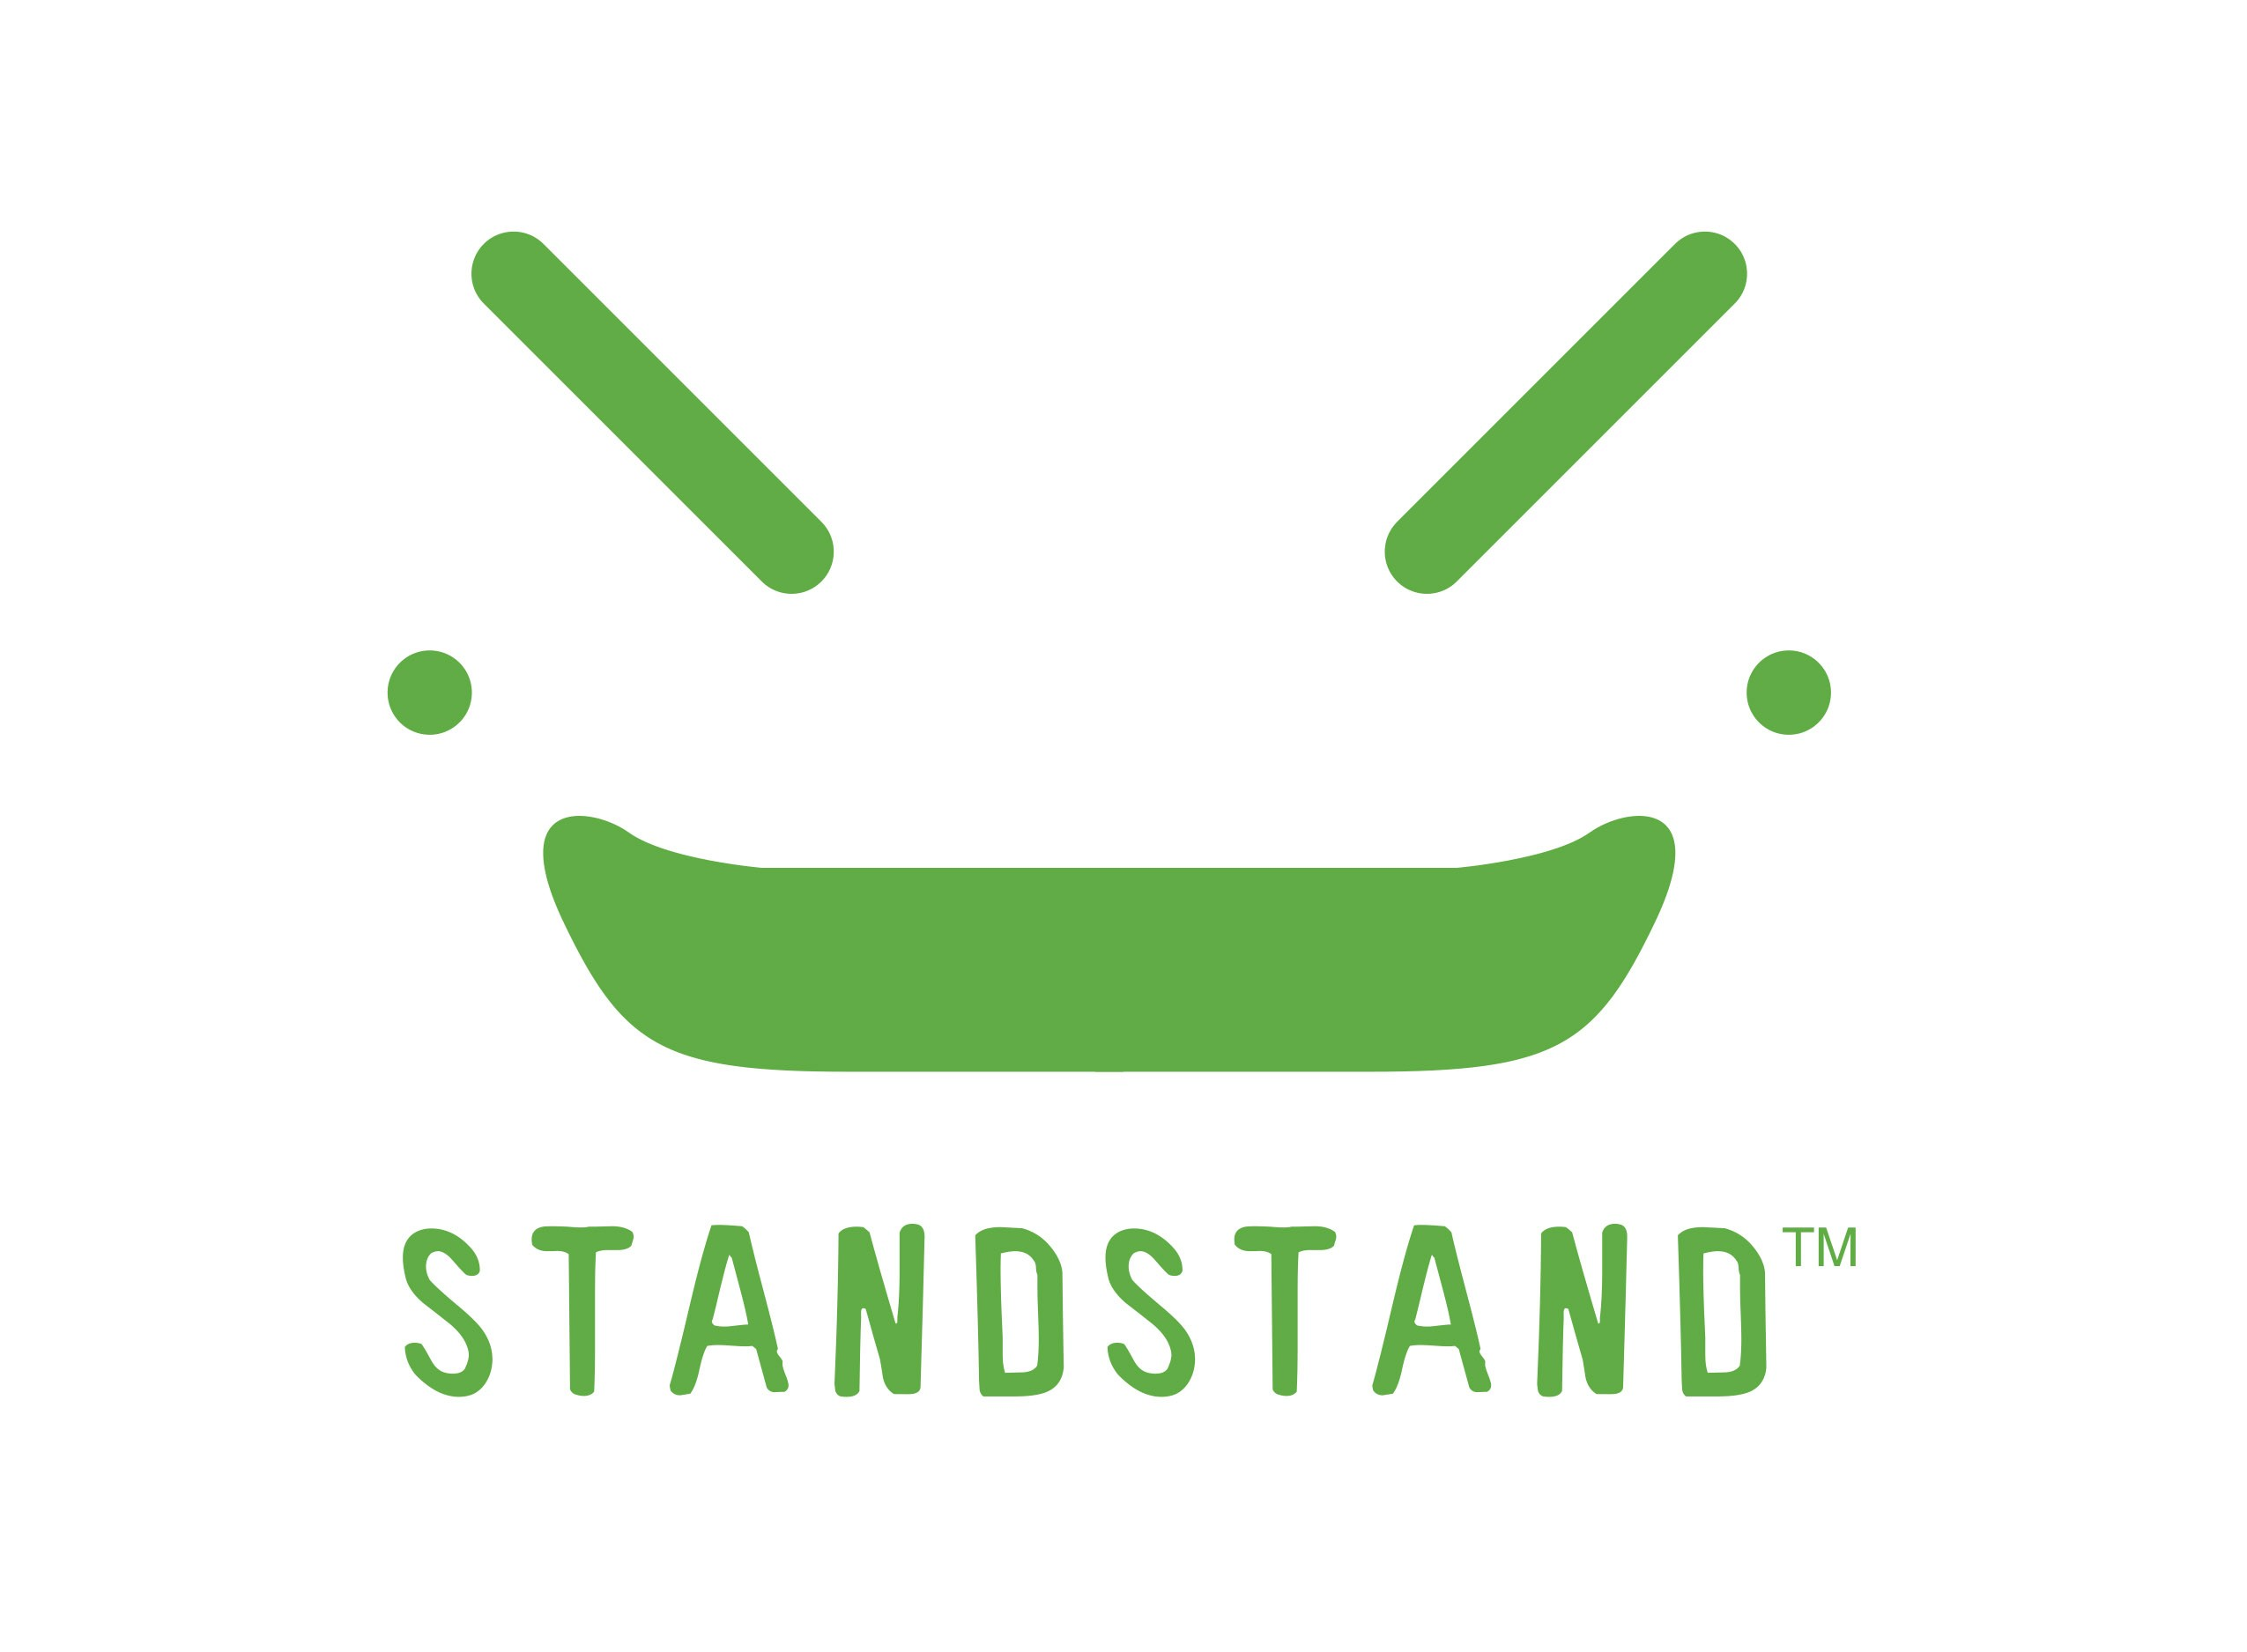 STANDSTAND-Logos